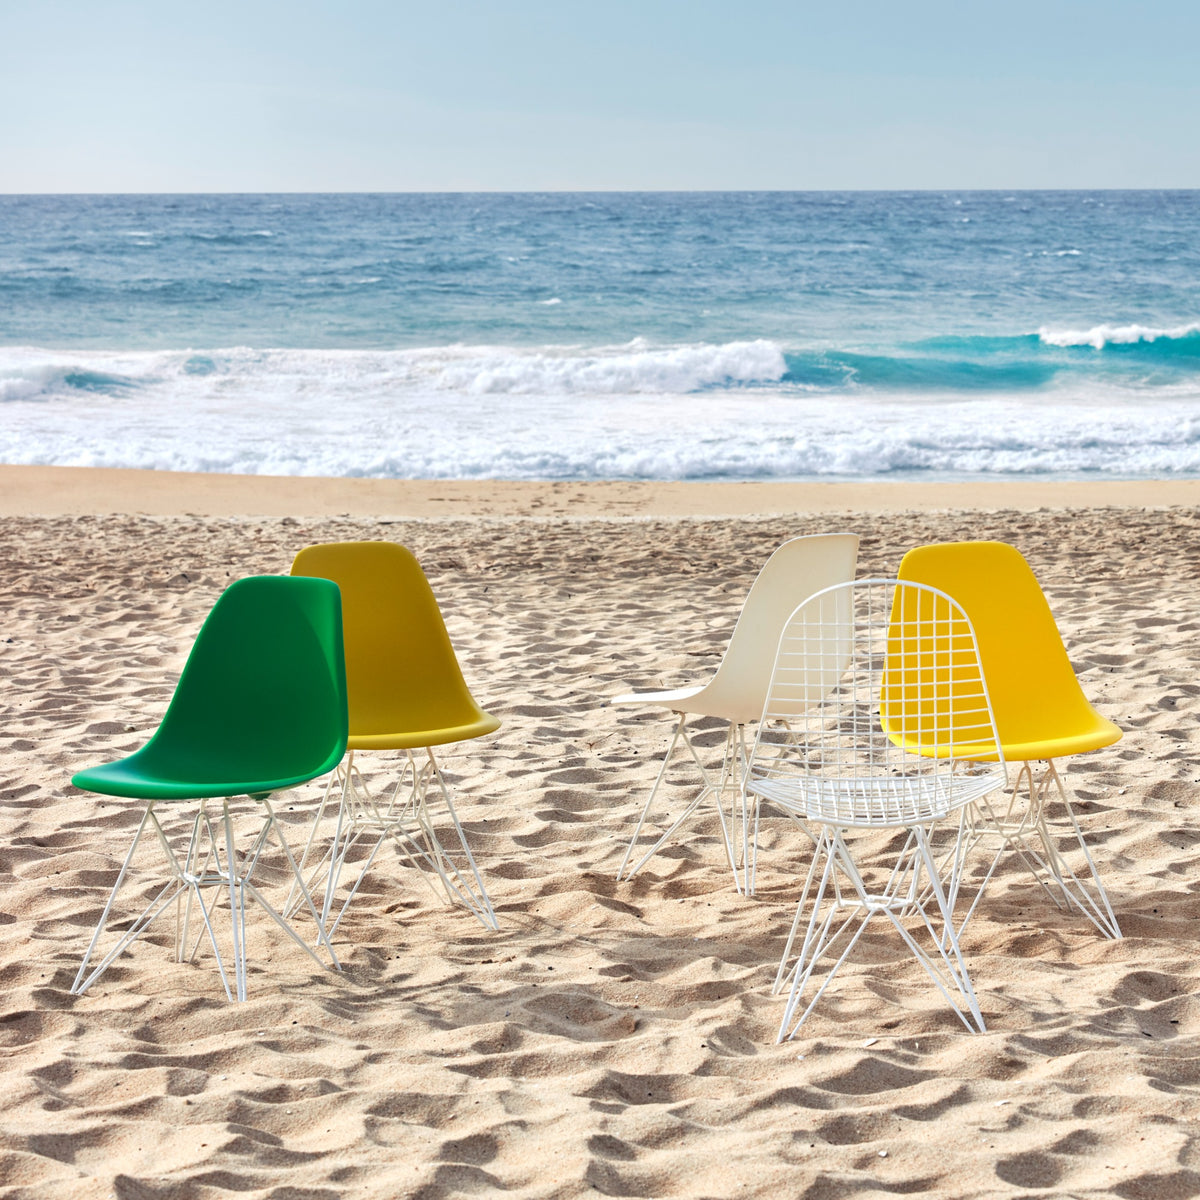 Vitra Eames Plastic Side Chair DSR Powder Coated for Outdoor Use. Seaside Setting